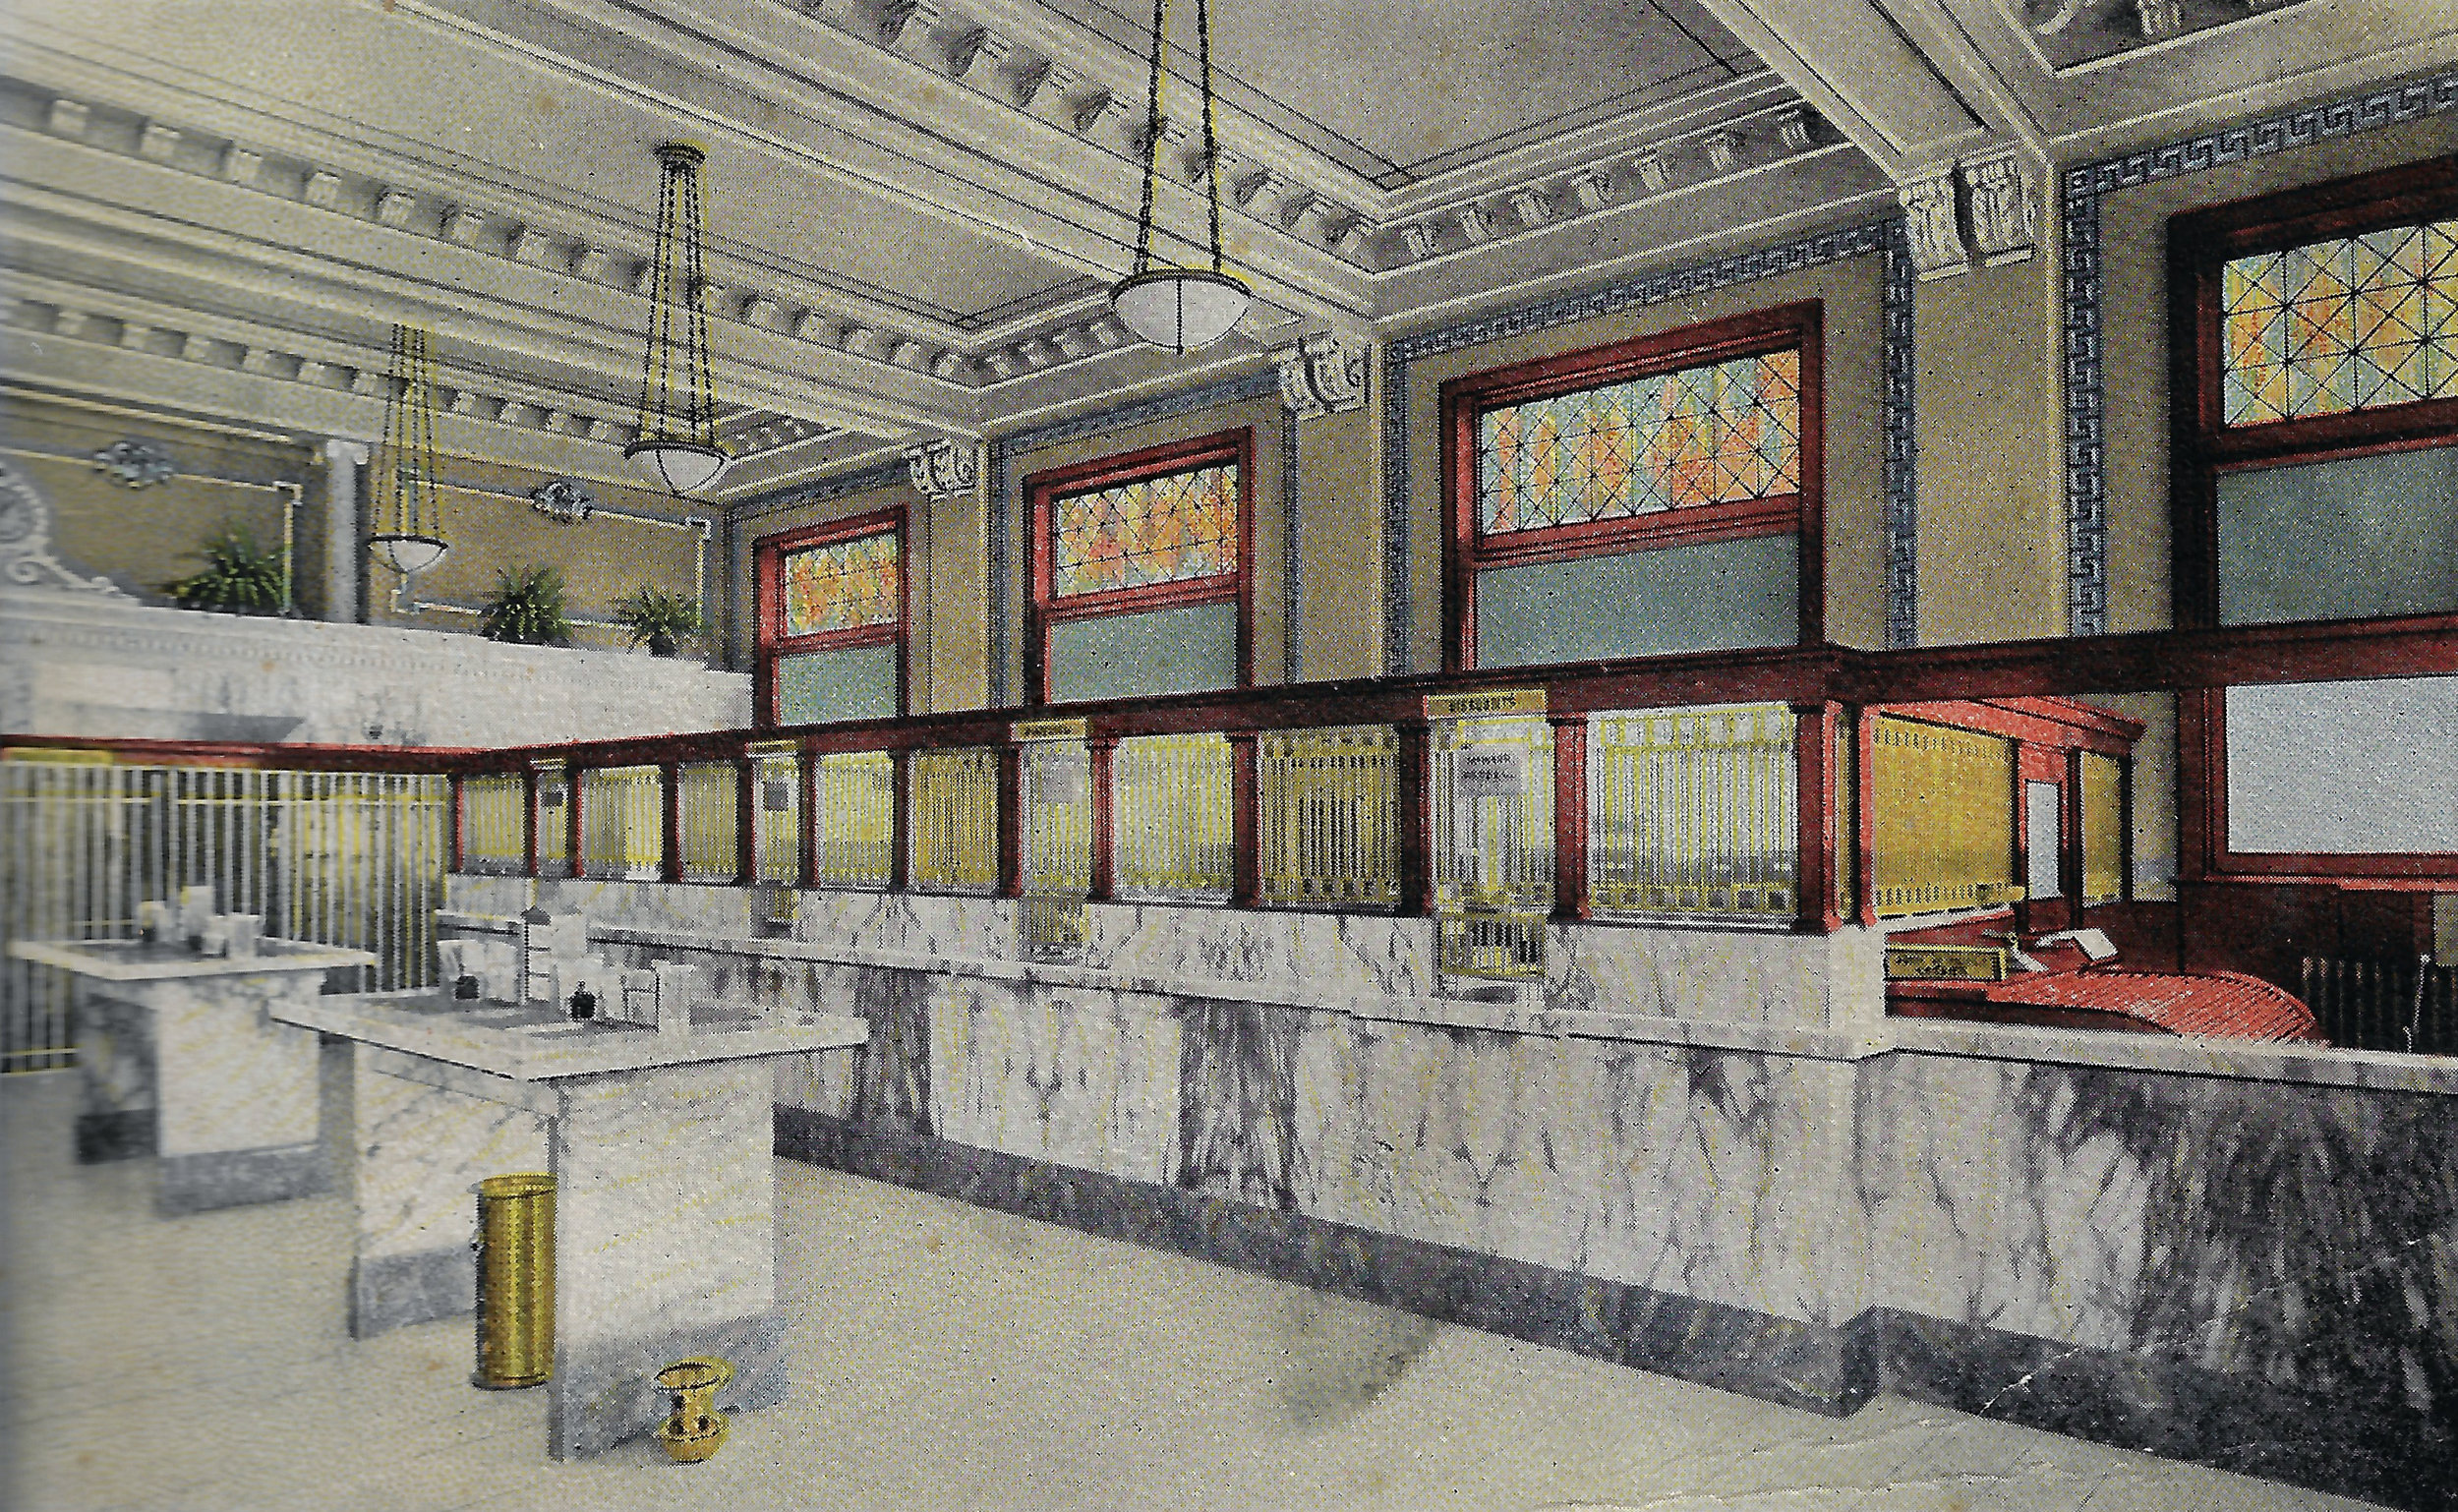 The original interior of the bank featured a good deal of marble and stained glass. At a time when most public buildings were not well lit, the First National Bank had good lighting from its many windows, as well as from the chandeliers hanging from the ceiling. Notice the spittoon for tobacco chewers, located on the floor, next to one of the marble desks for customers.